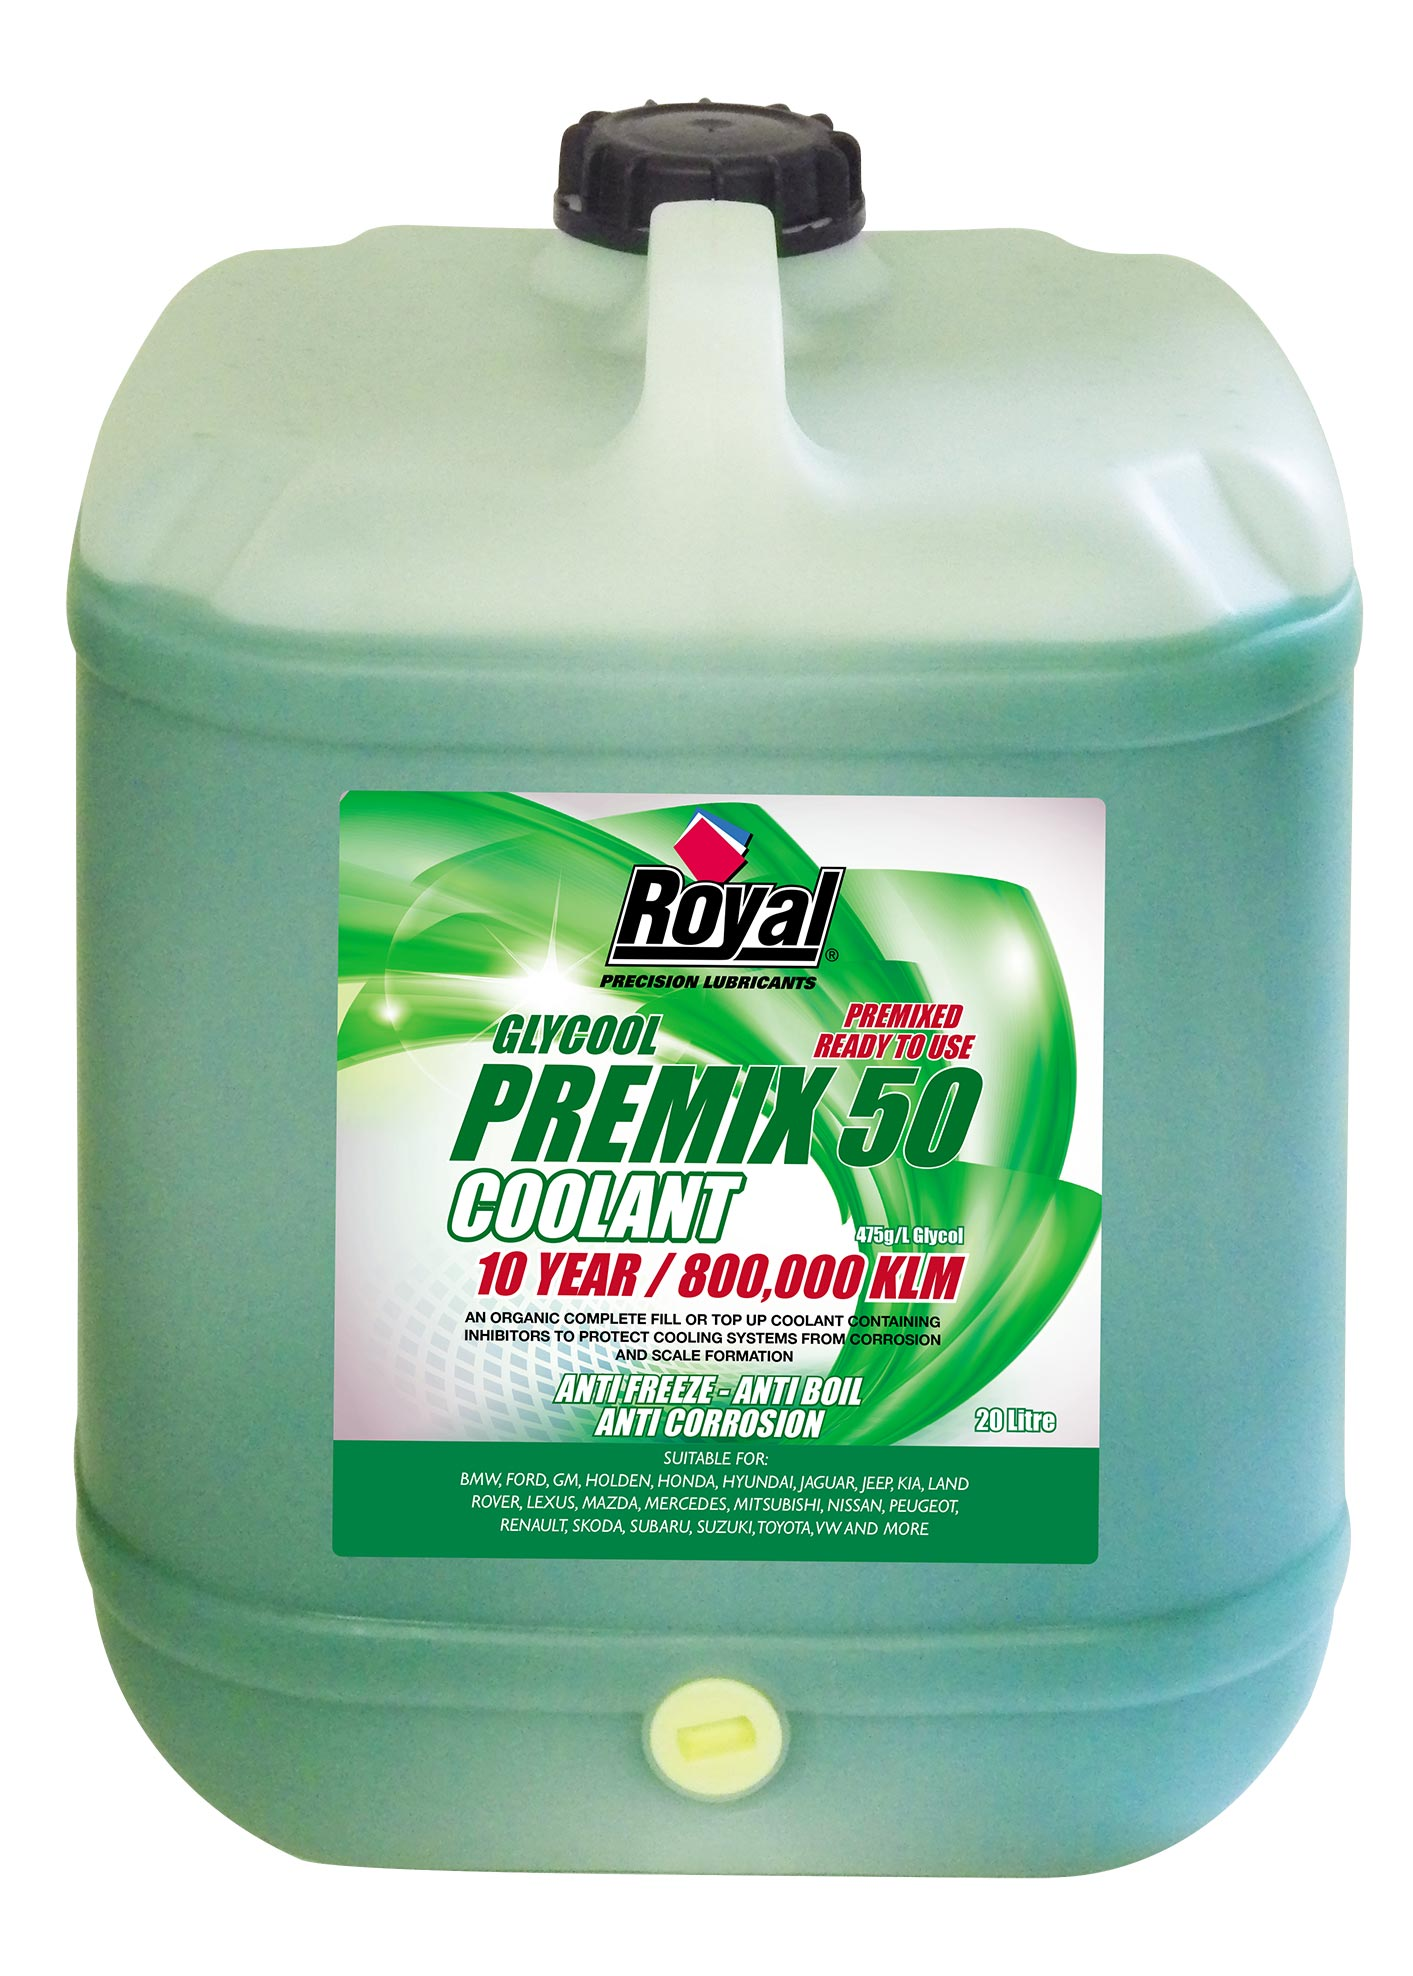 Royal Lubricants Glycool Premix 50 Coolant Kia Long Life 6028